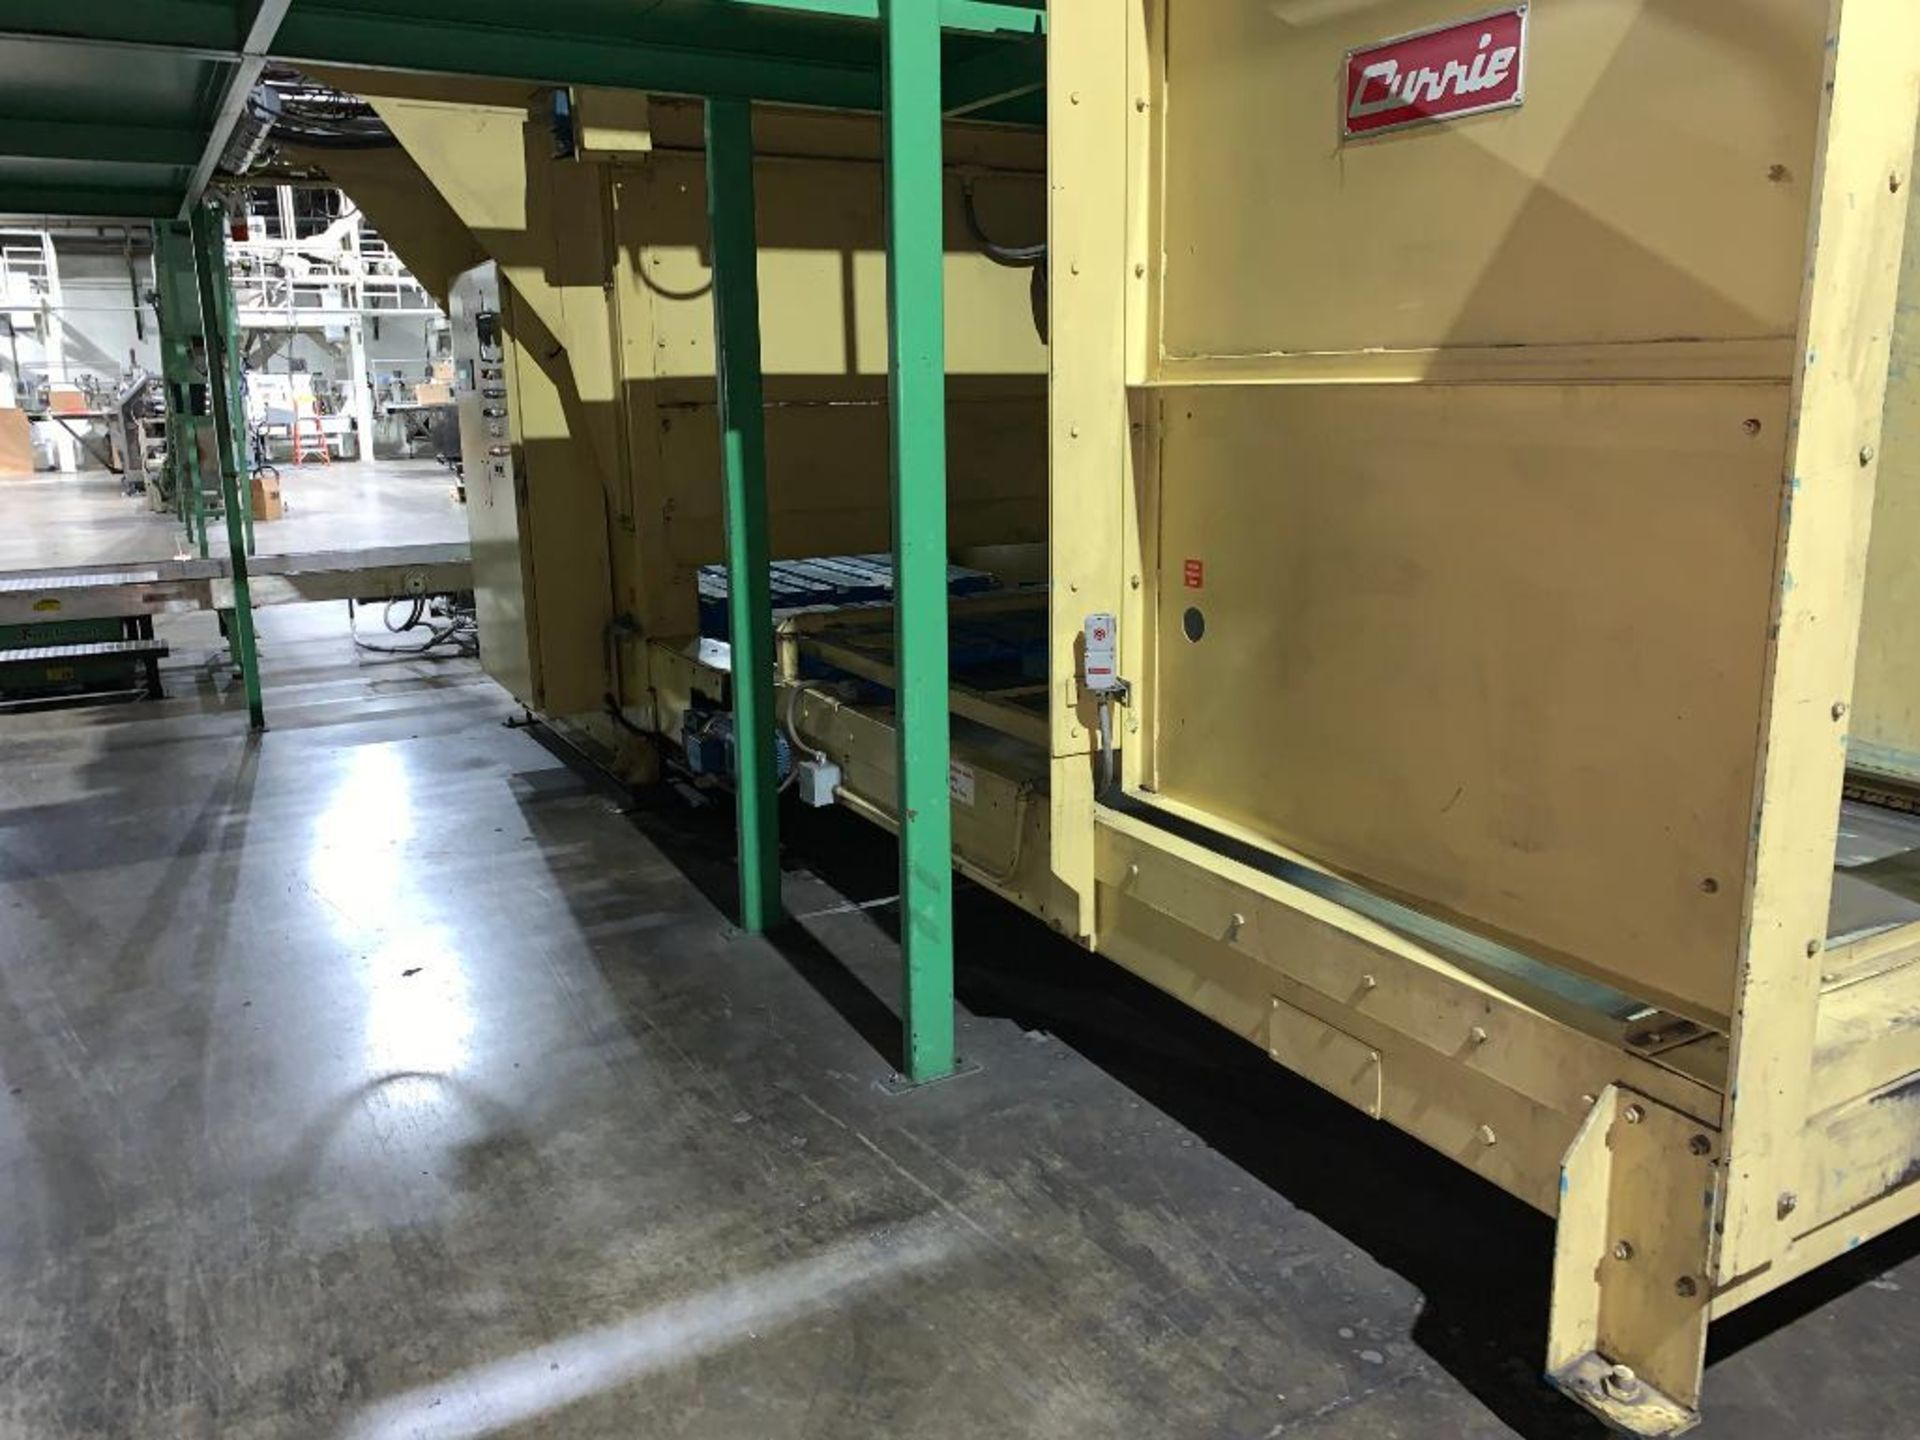 1992 Currie top to bottom palletizer, machine number LSP-5-1175 - Image 25 of 54